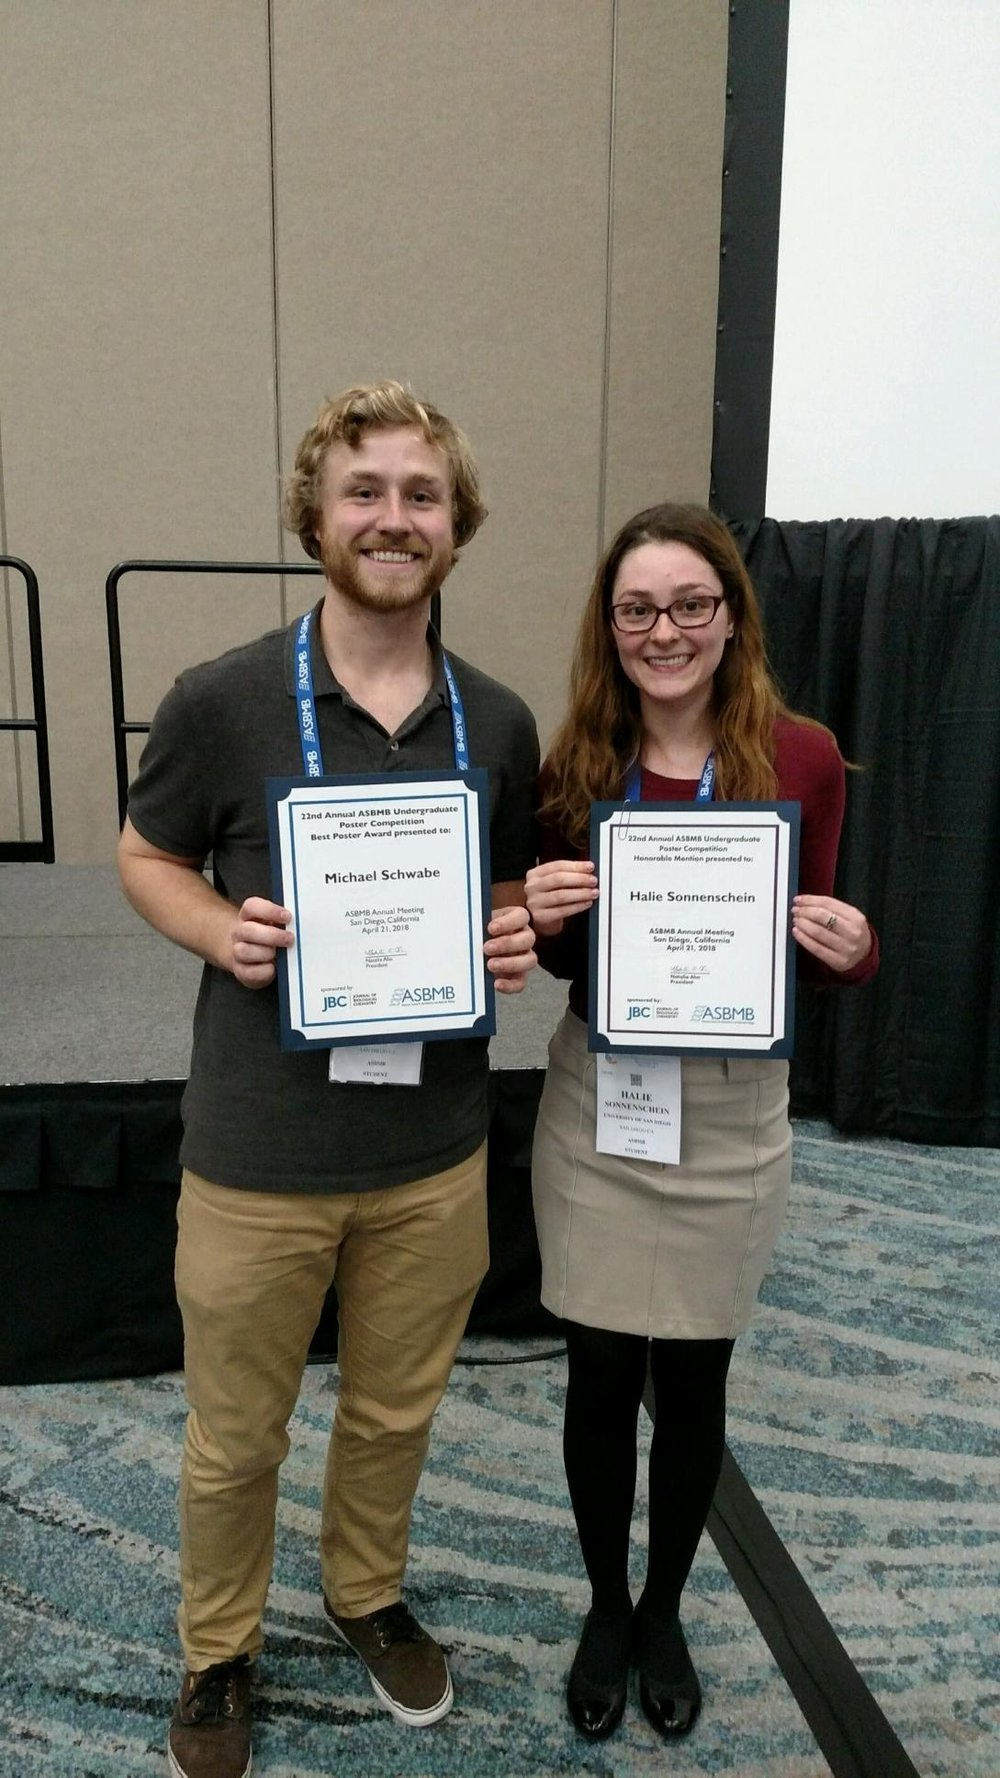 April 21st., 2018  Michael Schwabe, Winner, Proteins & Enzymes, Halie Sonnenschein, Honorable Mention, Cell Signaling, at the 2018 ASBMB Undergraduate Research Poster Competition: Congratulations!    September 2017  New Pedagogical Research Project on CUREs funded by NSF   http://www.sandiego.edu/ugresearch/news-events/detail.php?_focus=59646